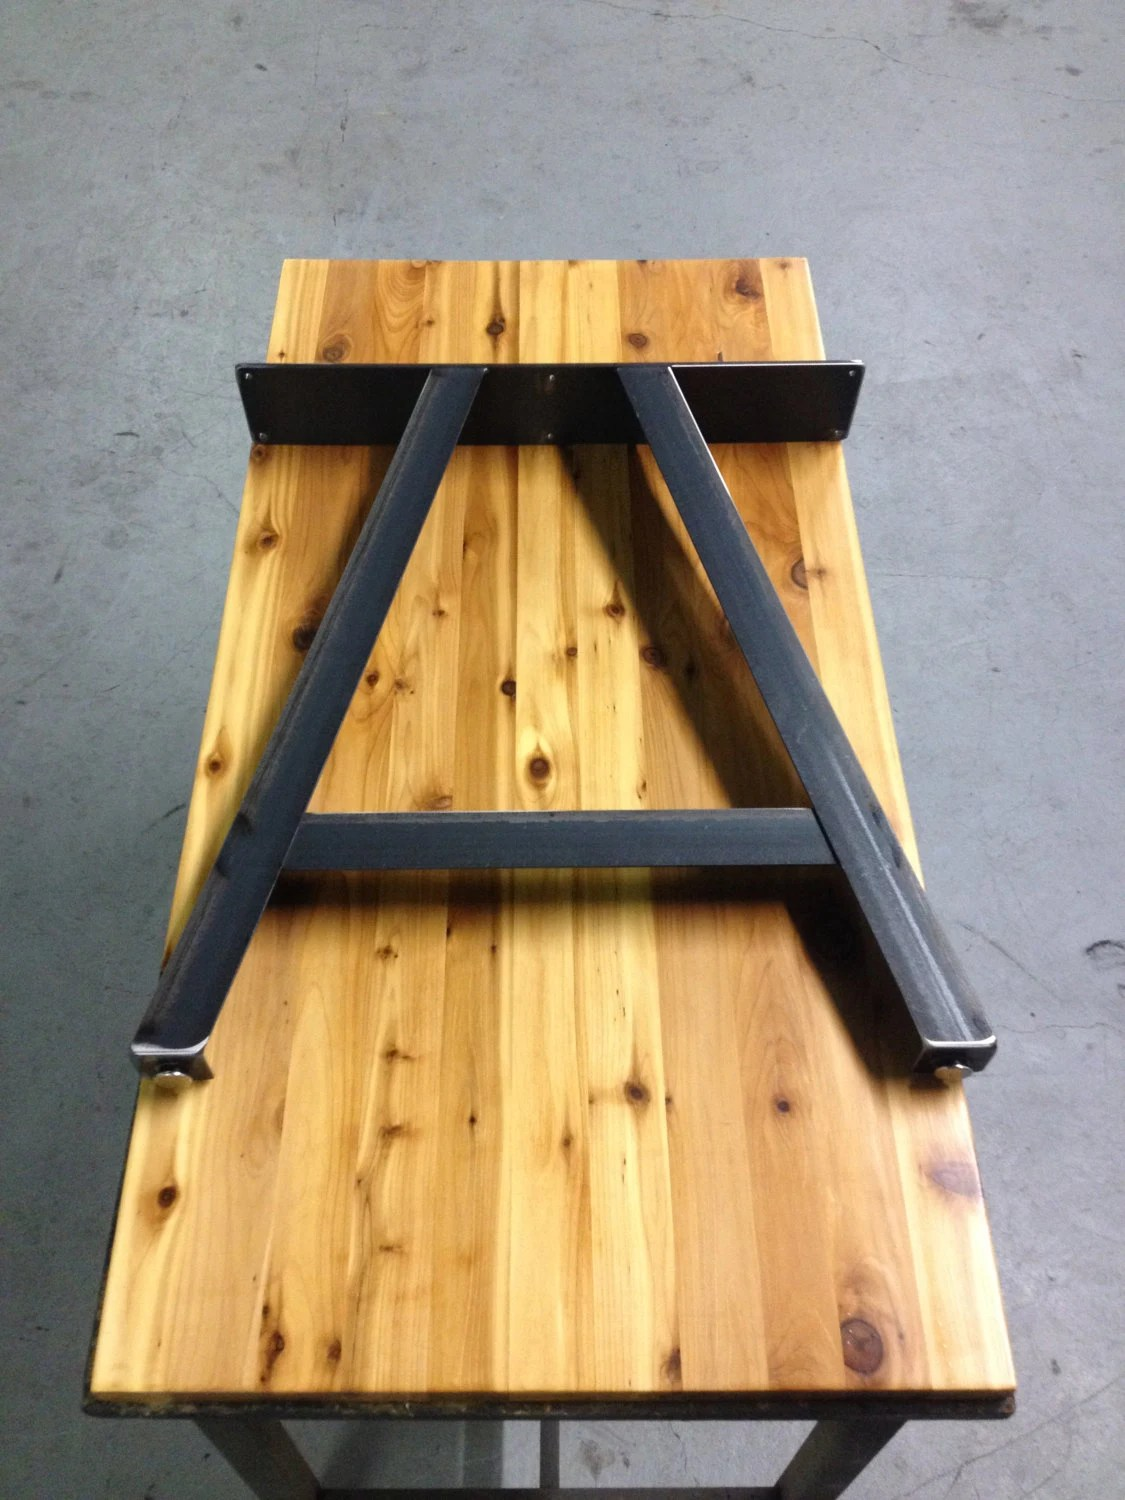 Diy Adjustable Table Legs A Frame Table Legs Adjustable Leveling Feet By Thelegshoppe